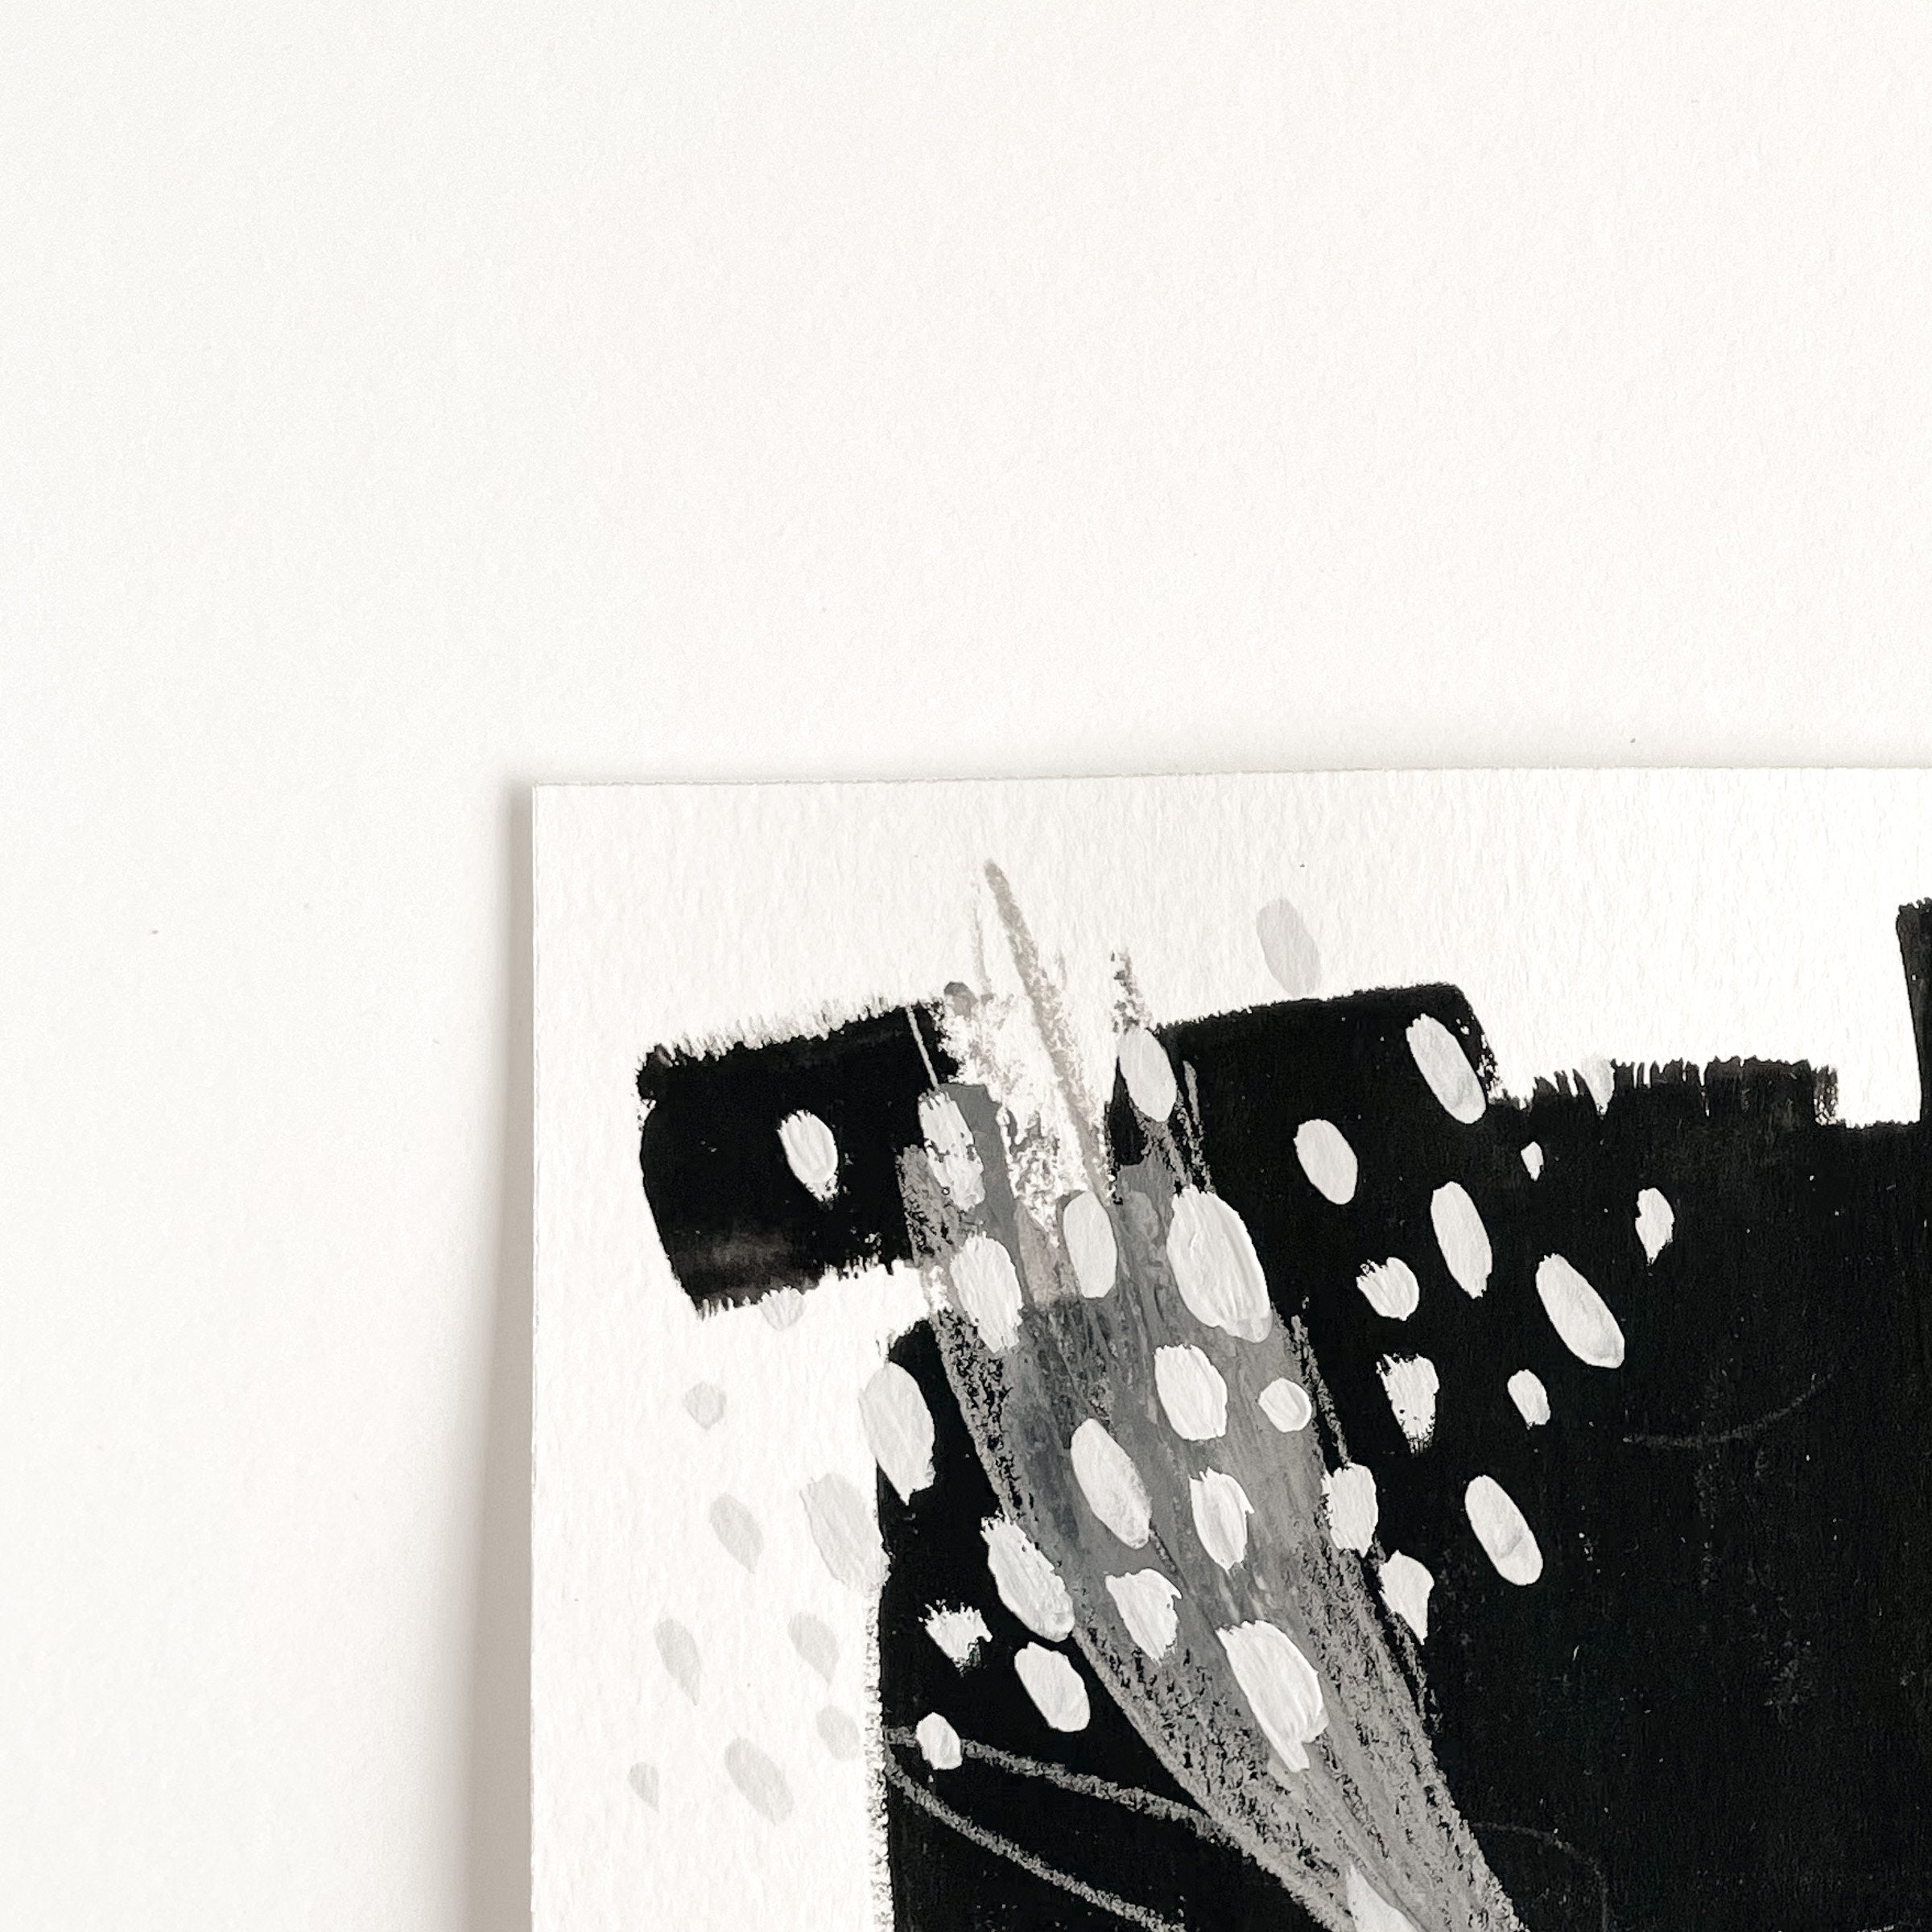 Stay 13 - Neutral, Black and white abstract painting on paper by artist Kait DeWolff. Kaitcreative